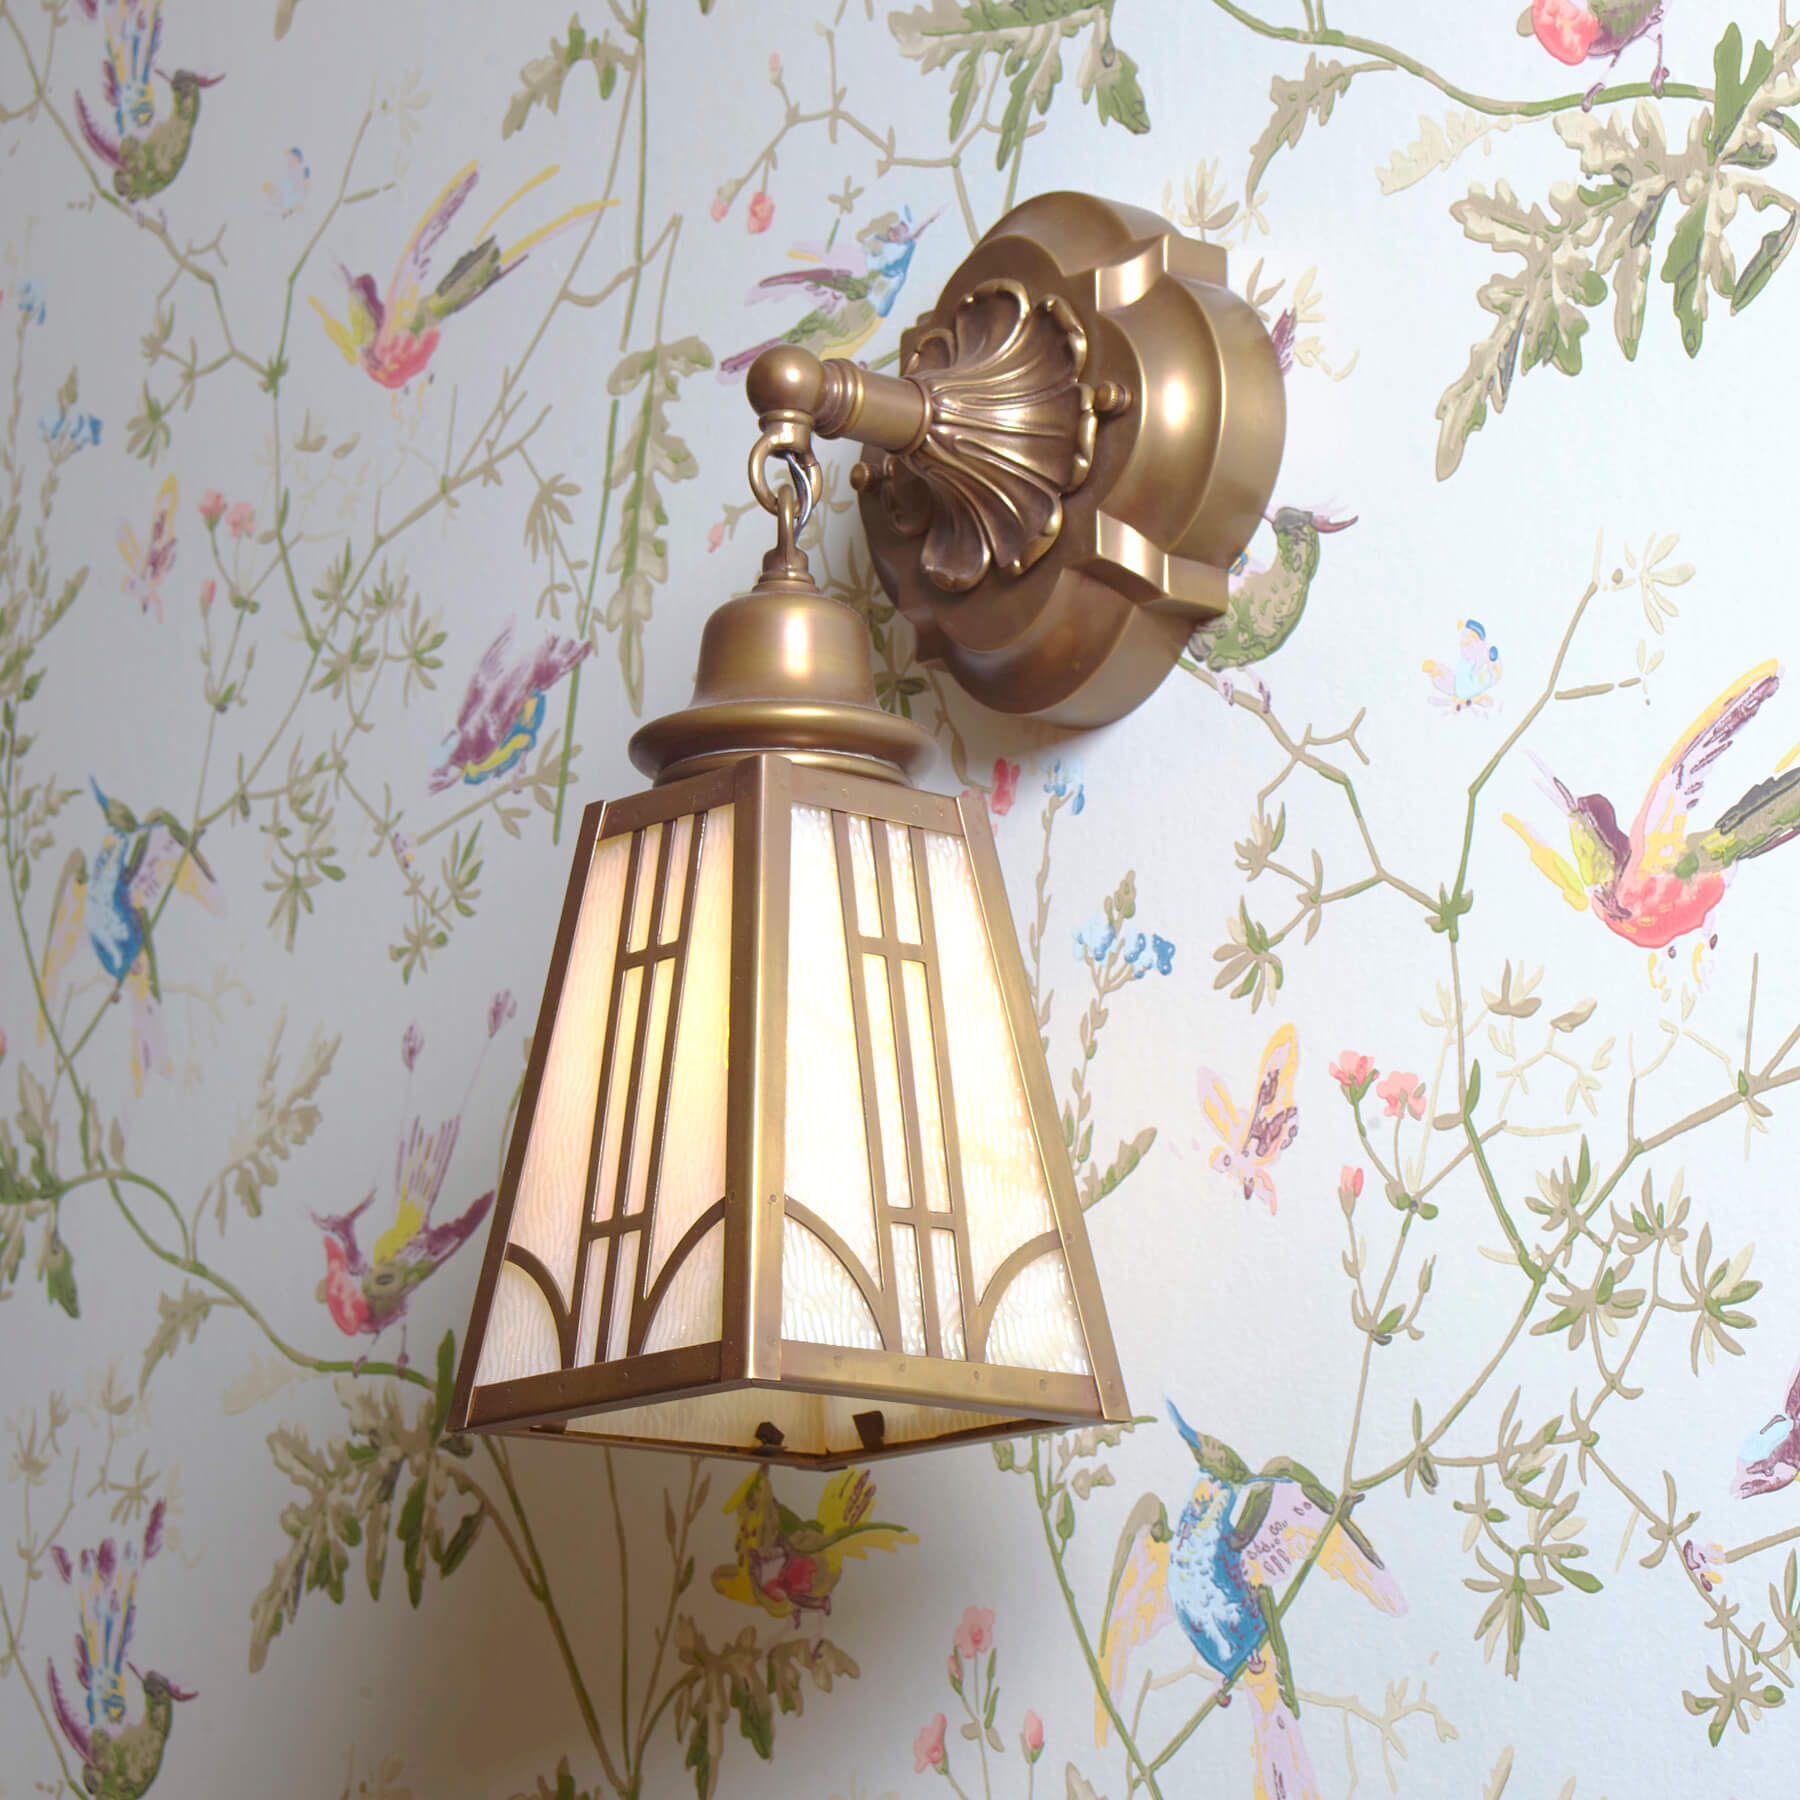 Traditional wall sconces, chandeliers, ceiling fixtures, and pendant lighting